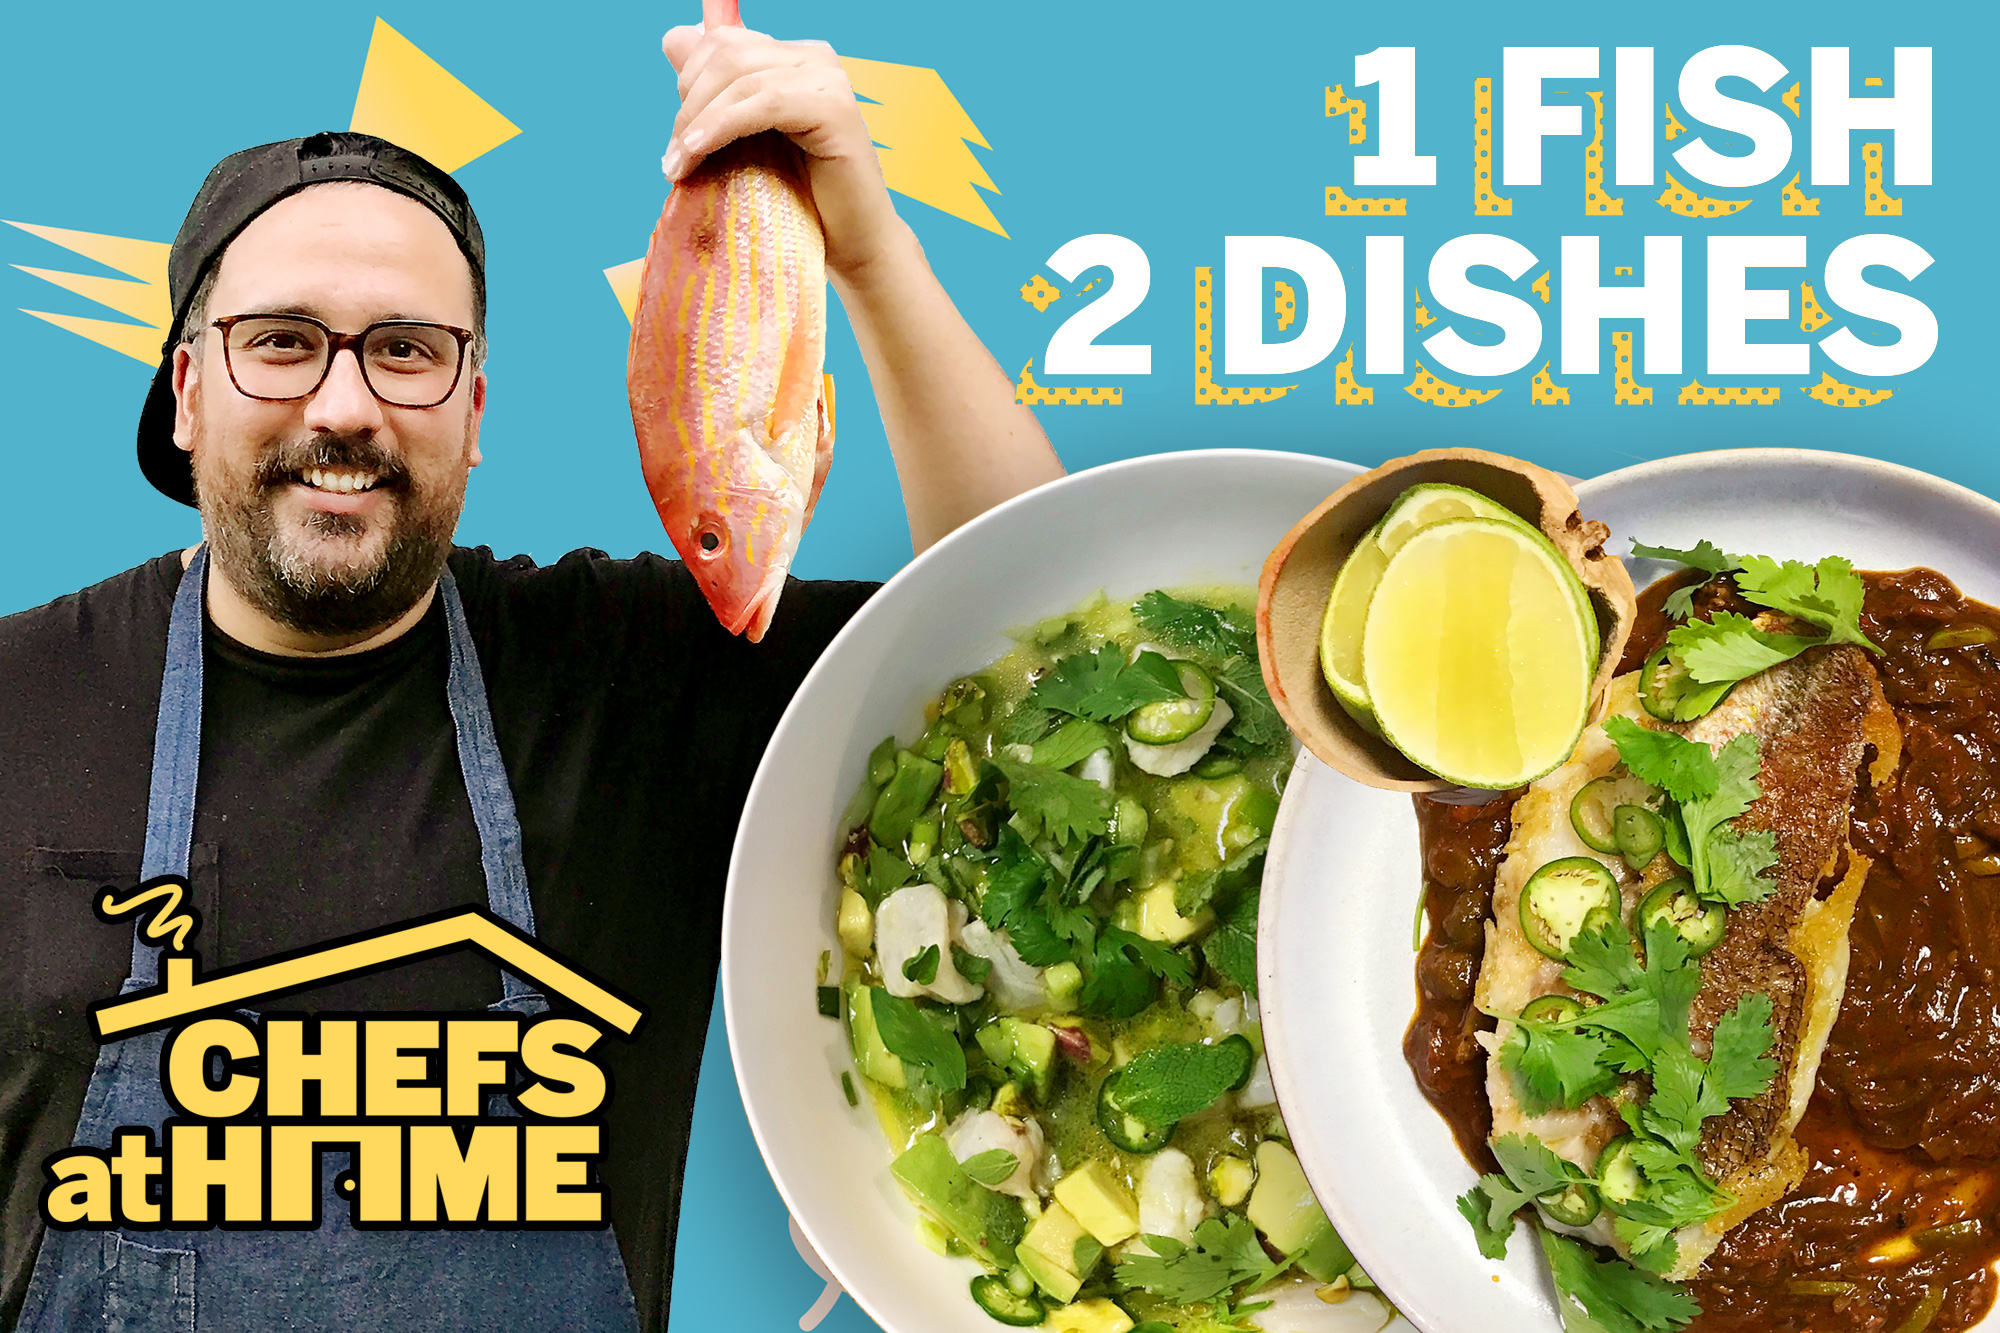 Chefs at Home featuring Chef Fermin making two dishes from 1 fish